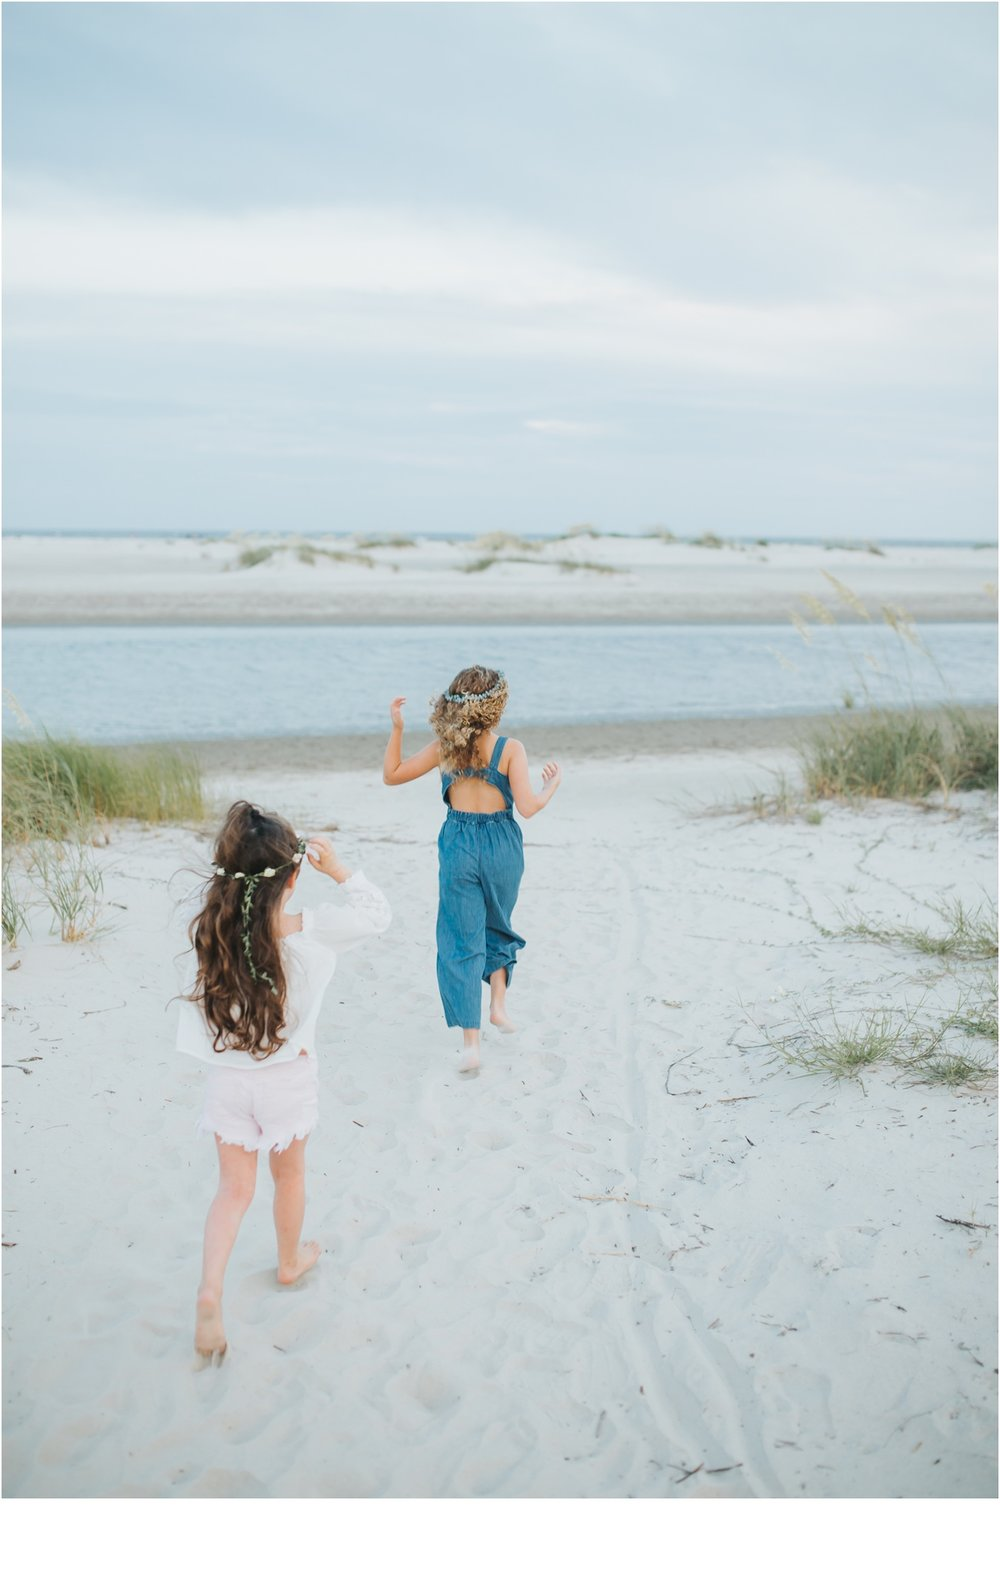 Rainey_Gregg_Photography_St._Simons_Island_Georgia_California_Wedding_Portrait_Photography_1055.jpg